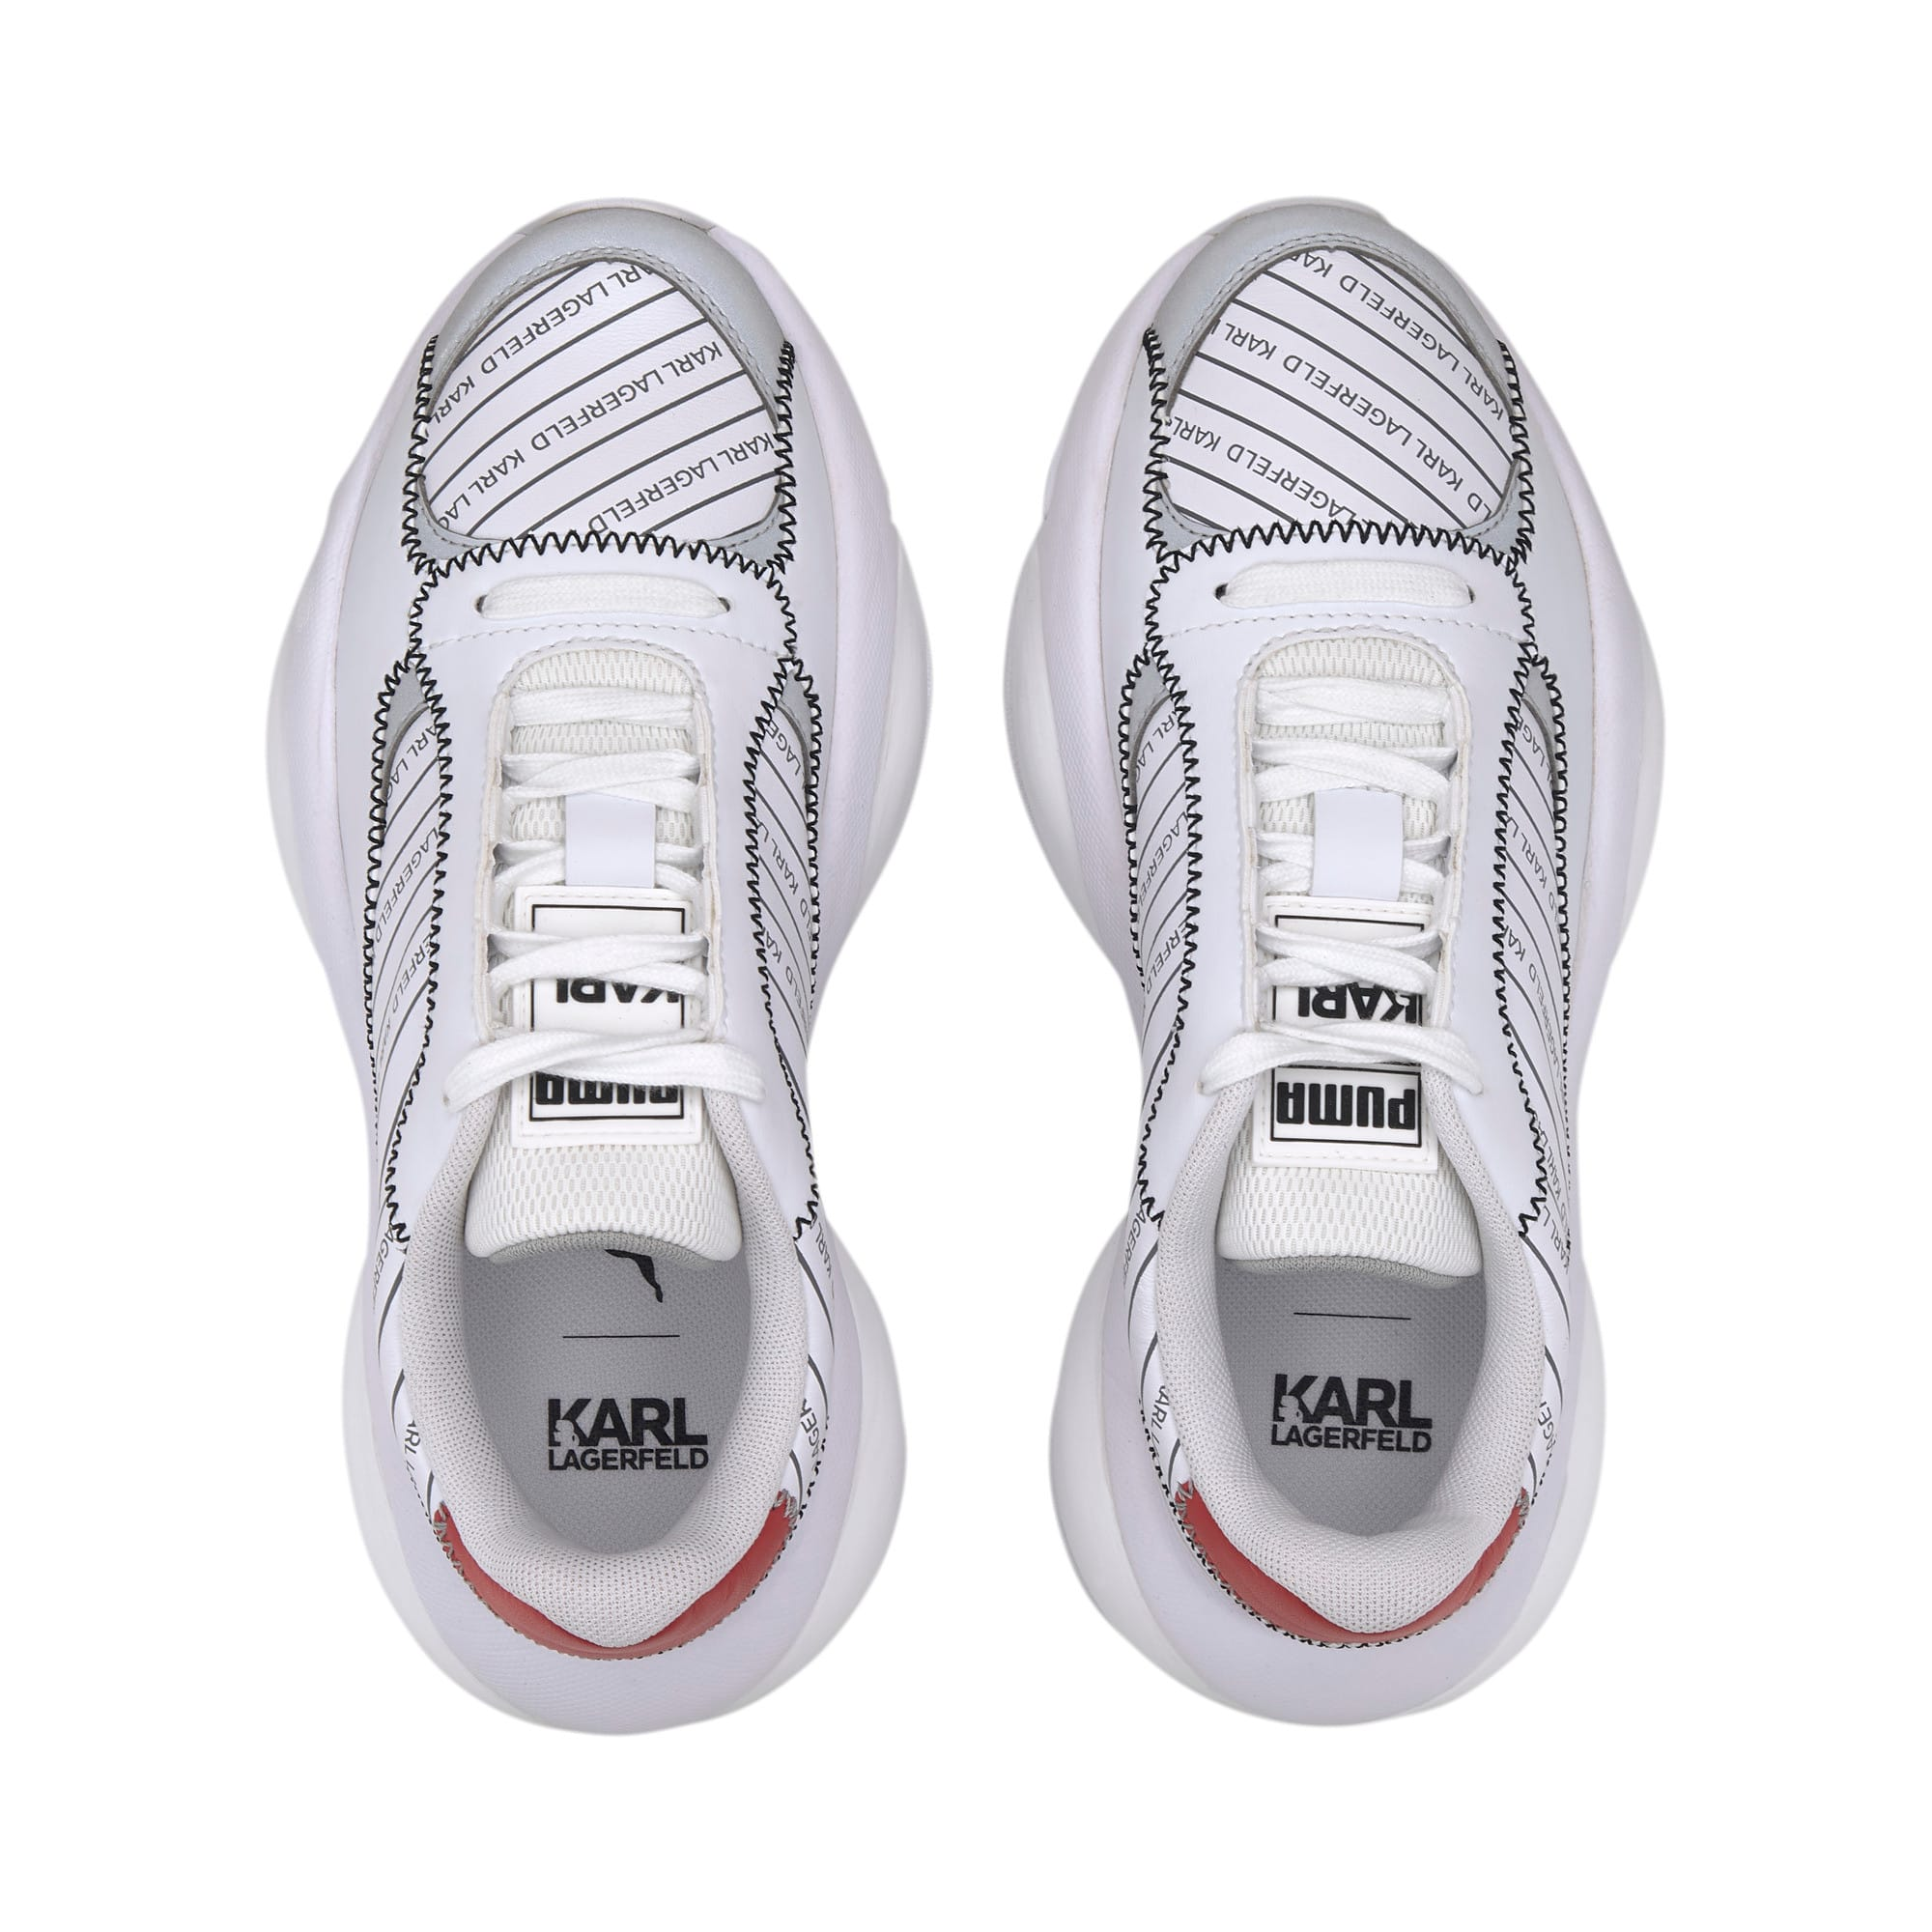 PUMA x KARL LAGERFELD Alteration Sneakers, Puma White, large